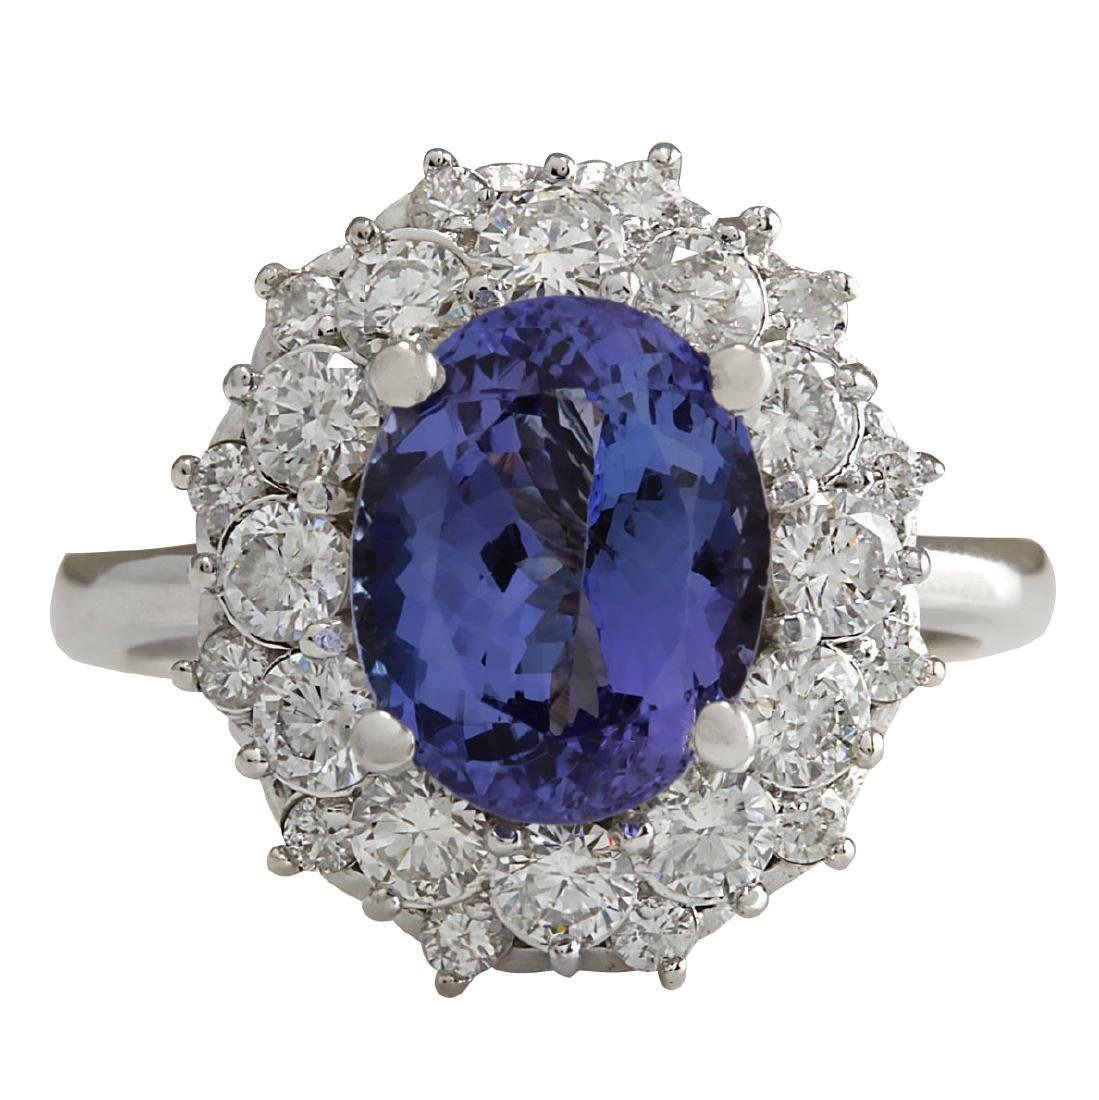 4.55 CTW Natural Blue Tanzanite And Diamond Ring In 14K